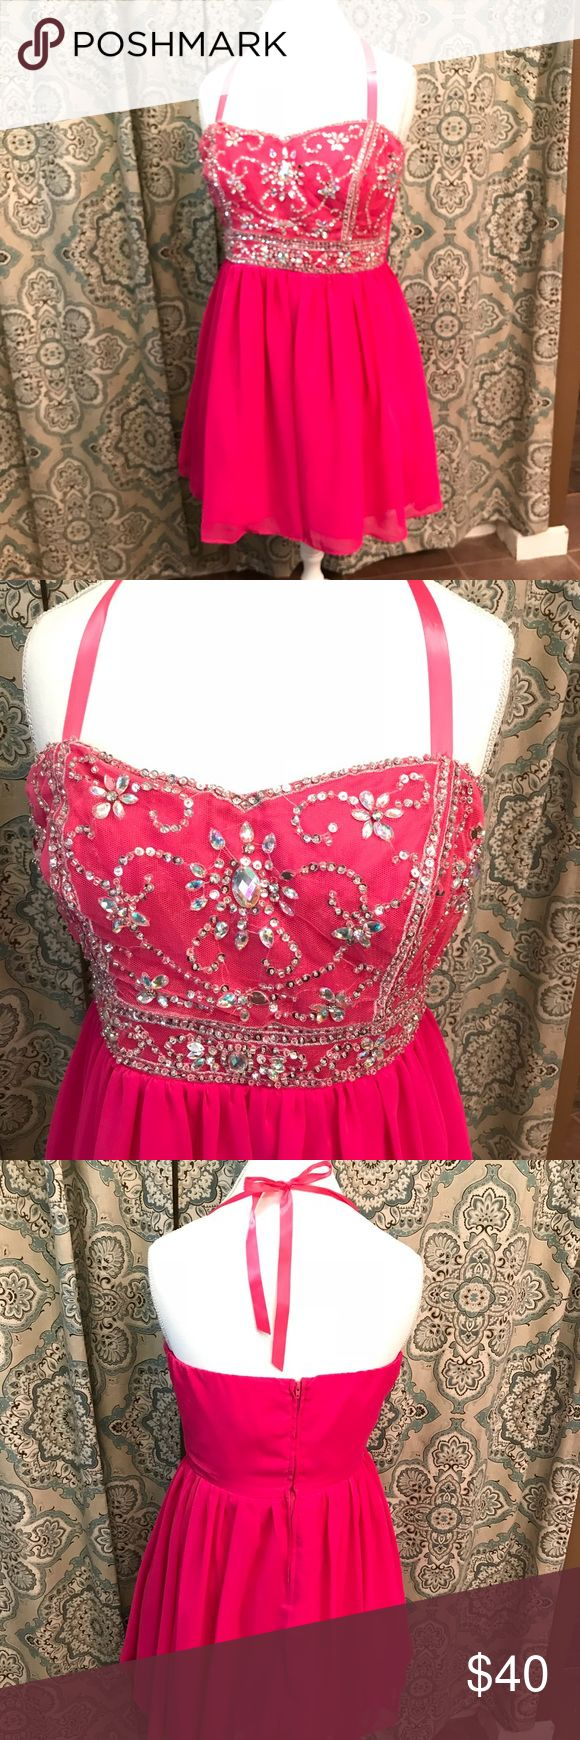 Prom dress Short prom dress in bright pink color. Sequined top. Straps added for teen. Can easily be removed. B Smart Dresses Prom